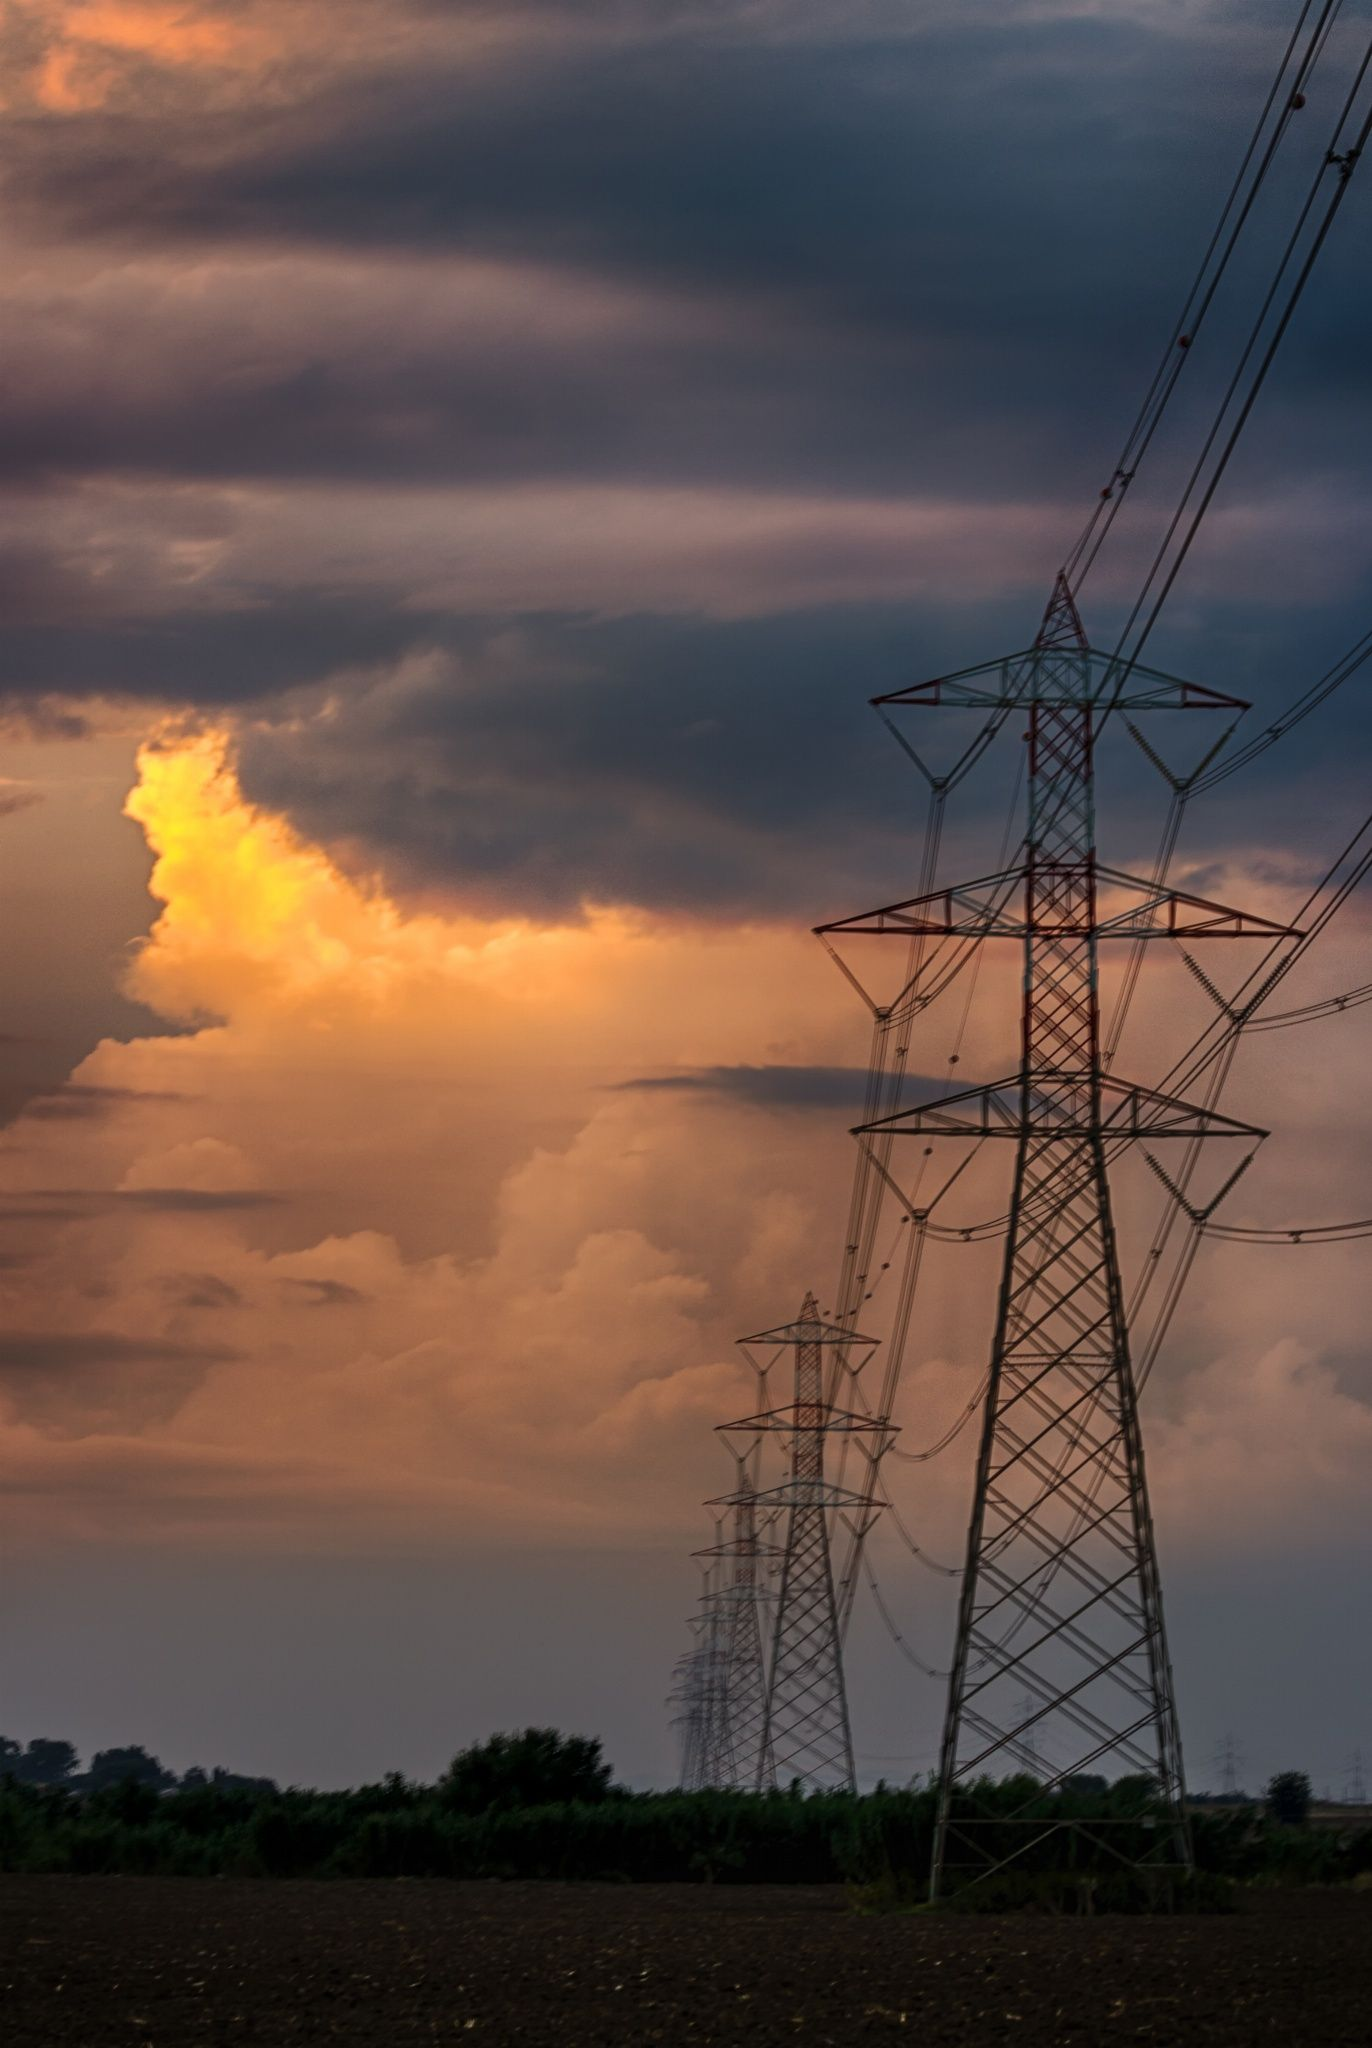 hight resolution of hdr test electric line and clouds by tiziano crescia on 500px transmission tower high